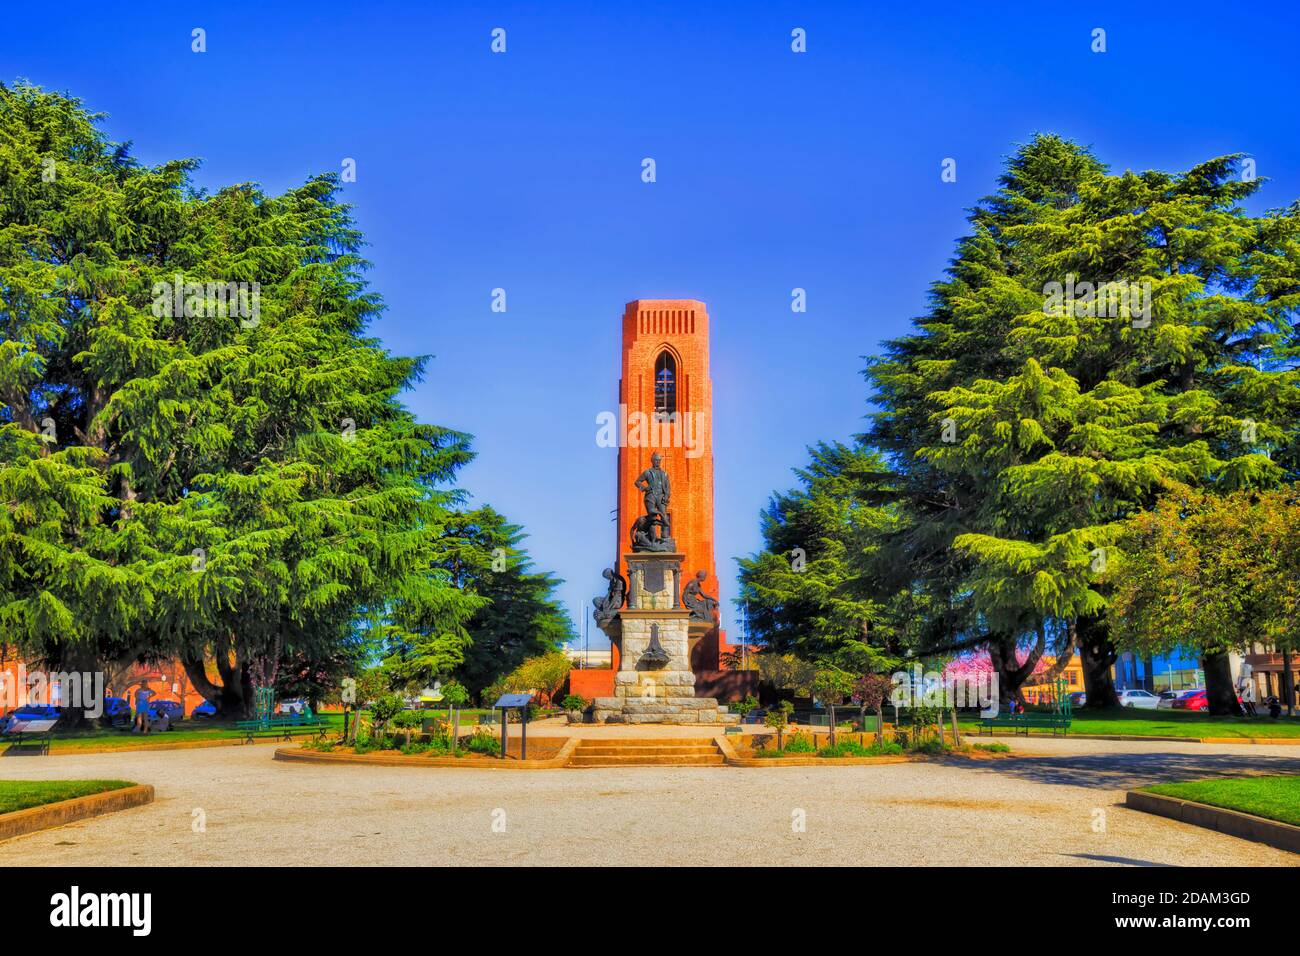 Public park in Bathurst city of regional Australia on a sunny day with statue and war memorial around bell tower - kings parade and George street. Stock Photo